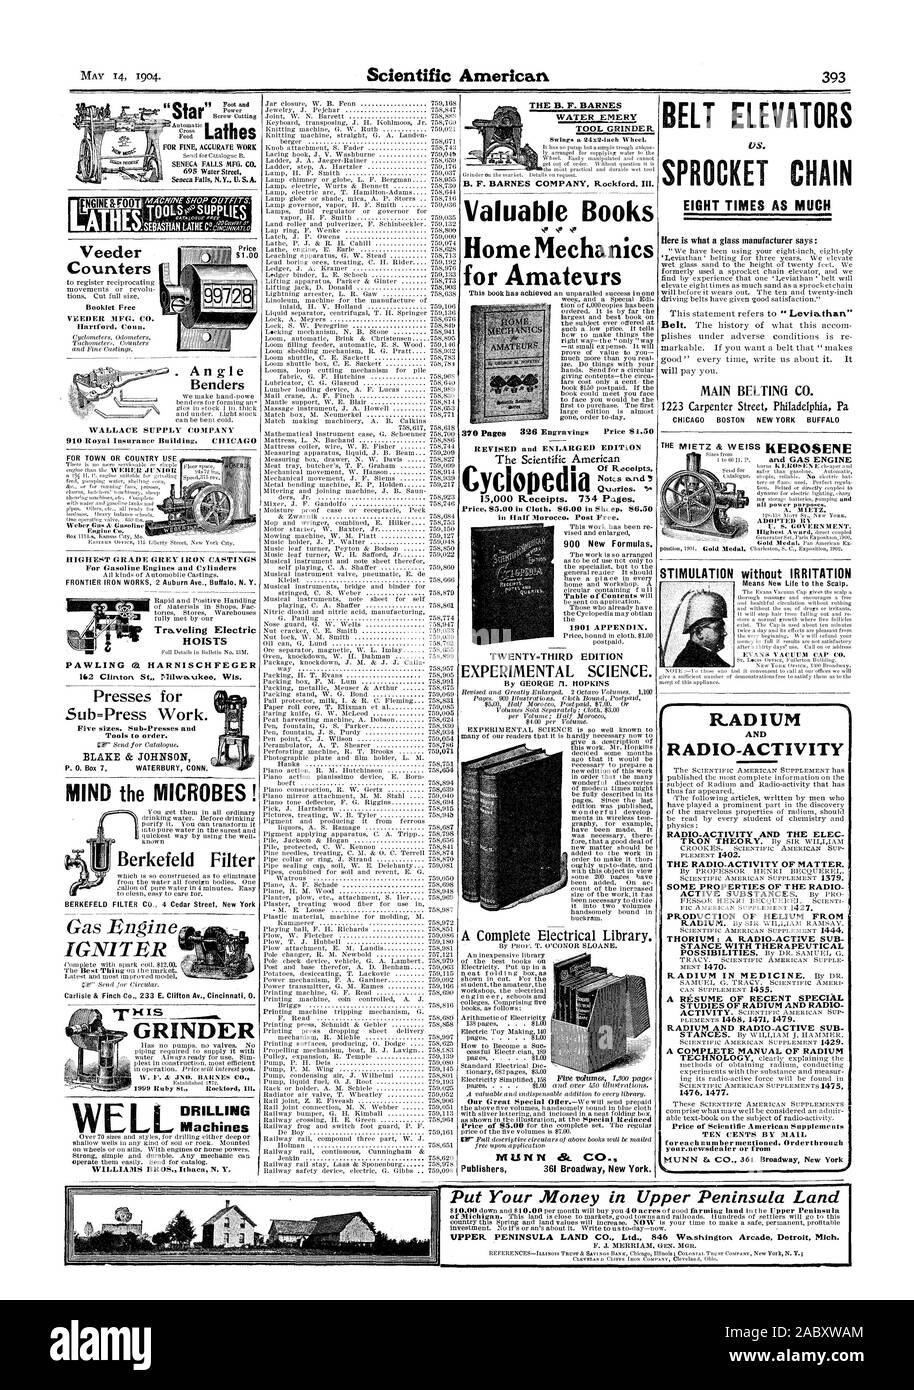 for each number mentioned. Order through your.newsdealer or from STIMULATION without IRRITATION PAWLING ta HARNISCHFEGER HOISTS Counters Booklet Free VEEDER MFG. CO. Hartford Conn. Automatic TOOLSesuPPLIES . An gle  Benders WALLACE SUPPLY COMPANY 910 Royal Insurance Building CHICAG HIGHEST GRADE GREY IRON CASTINGS For Gasoline Engines and Cylinders Presses for Sub=Press Work. Five sizes. Sub-Presses and Tools to order. WEL Machines Gas Engine IGNITER Berkefeld Filter Put Your Money in Upper Peninsula Land, scientific american, 1904-05-14 Stock Photo